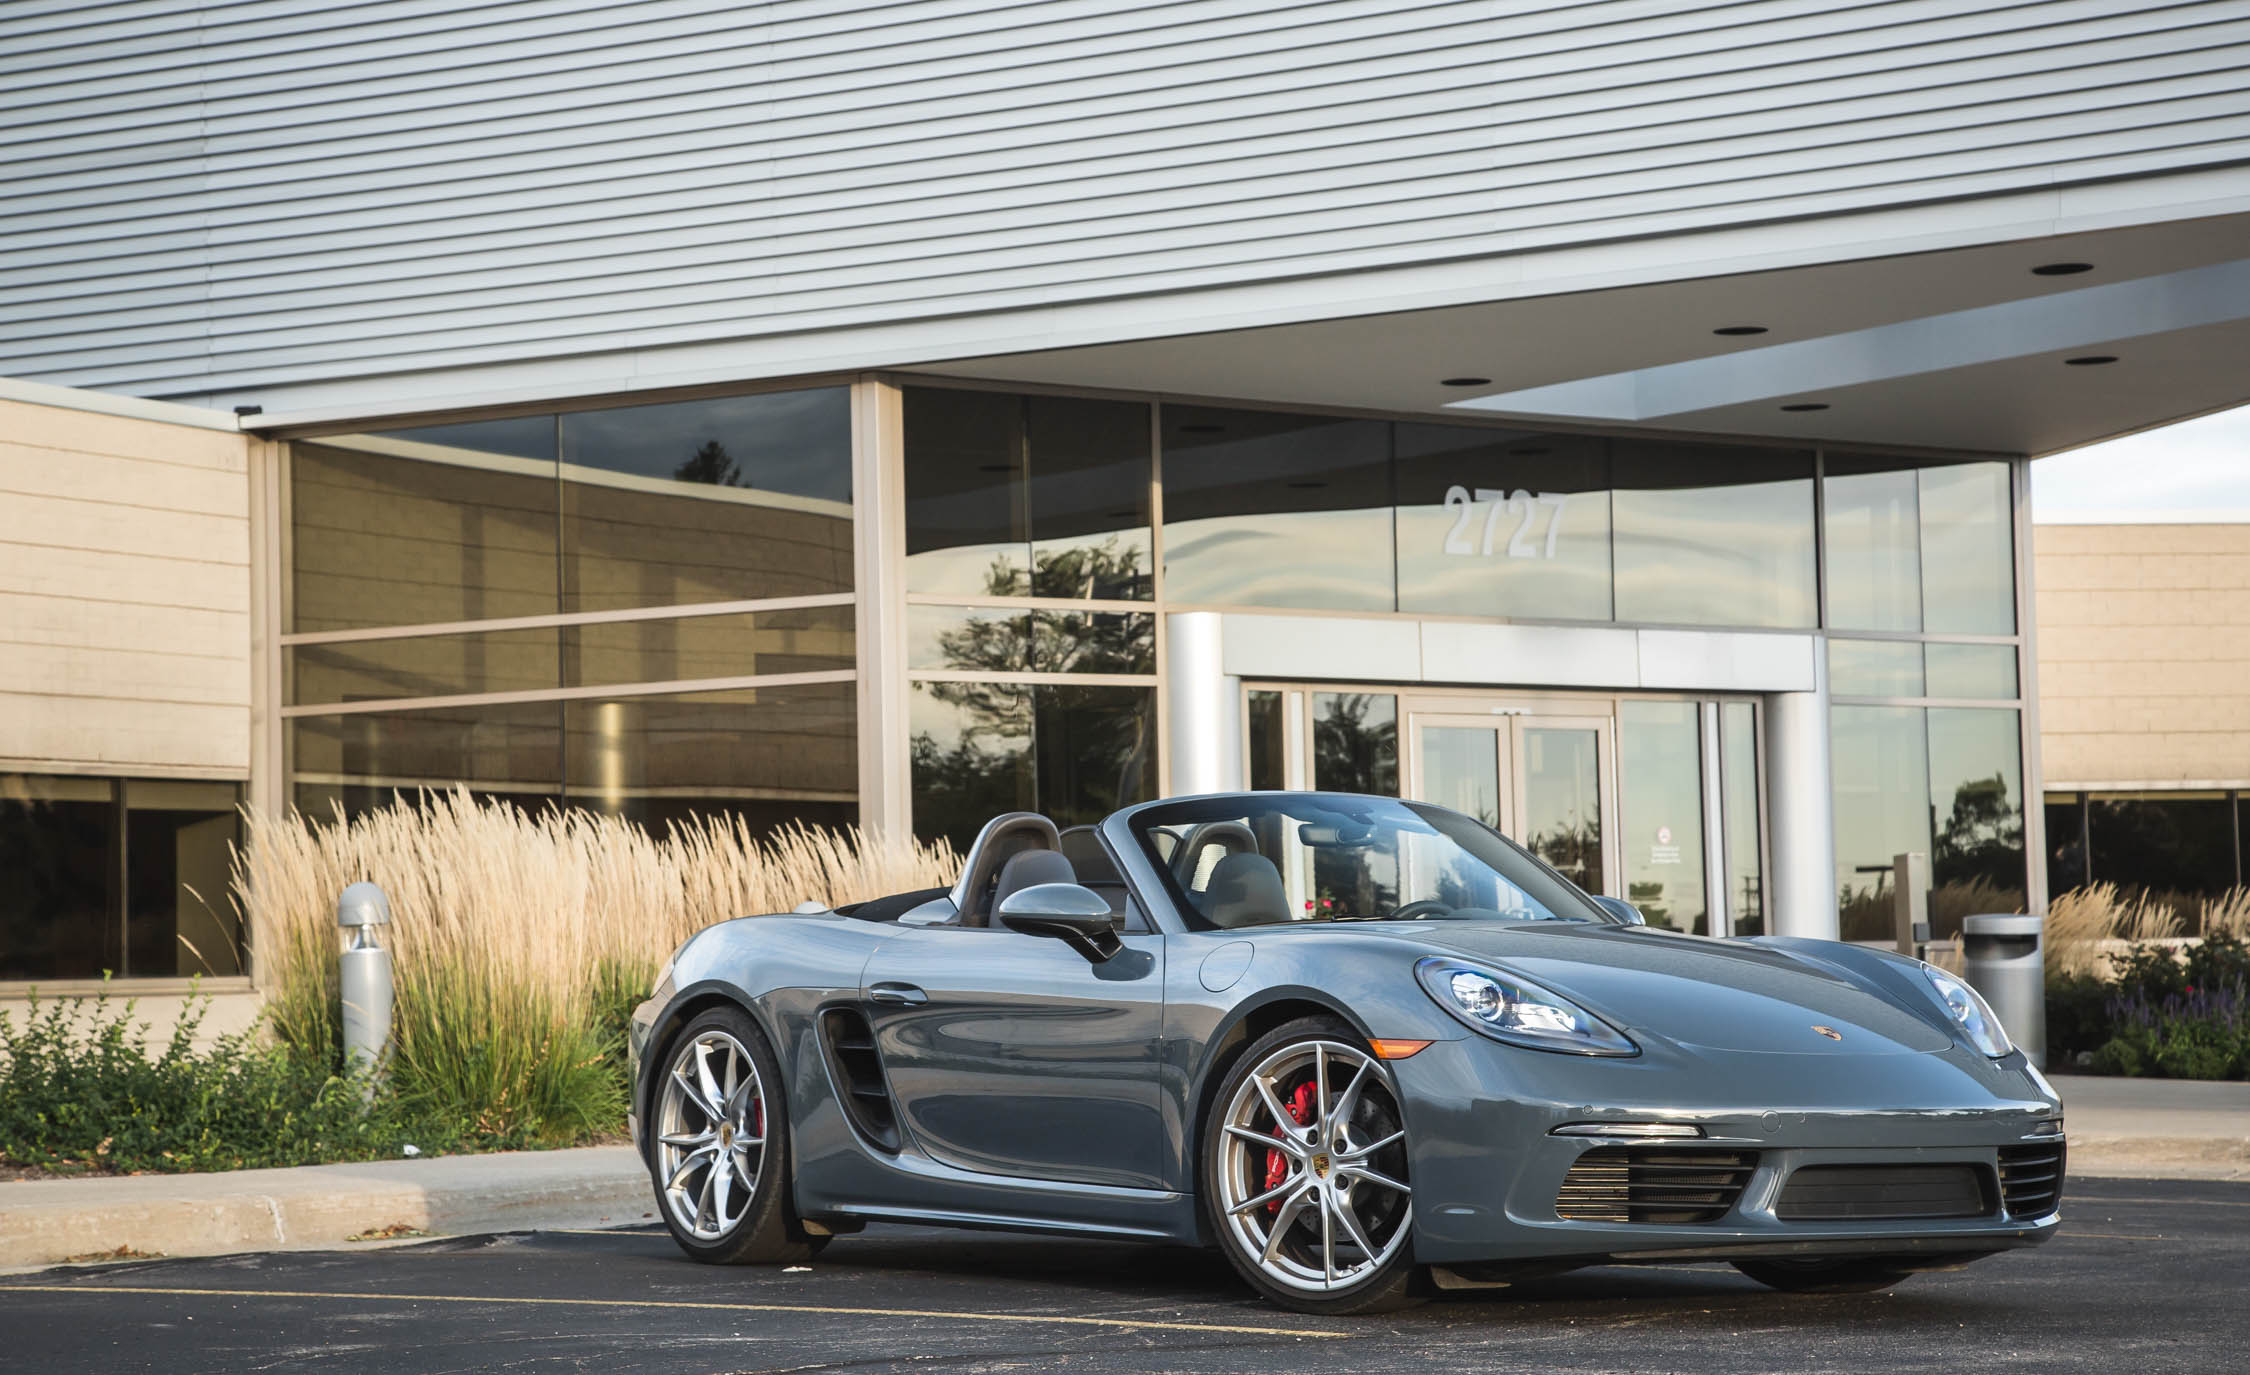 2017 Porsche 718 Boxster S Exterior Gray Metallic (View 22 of 71)